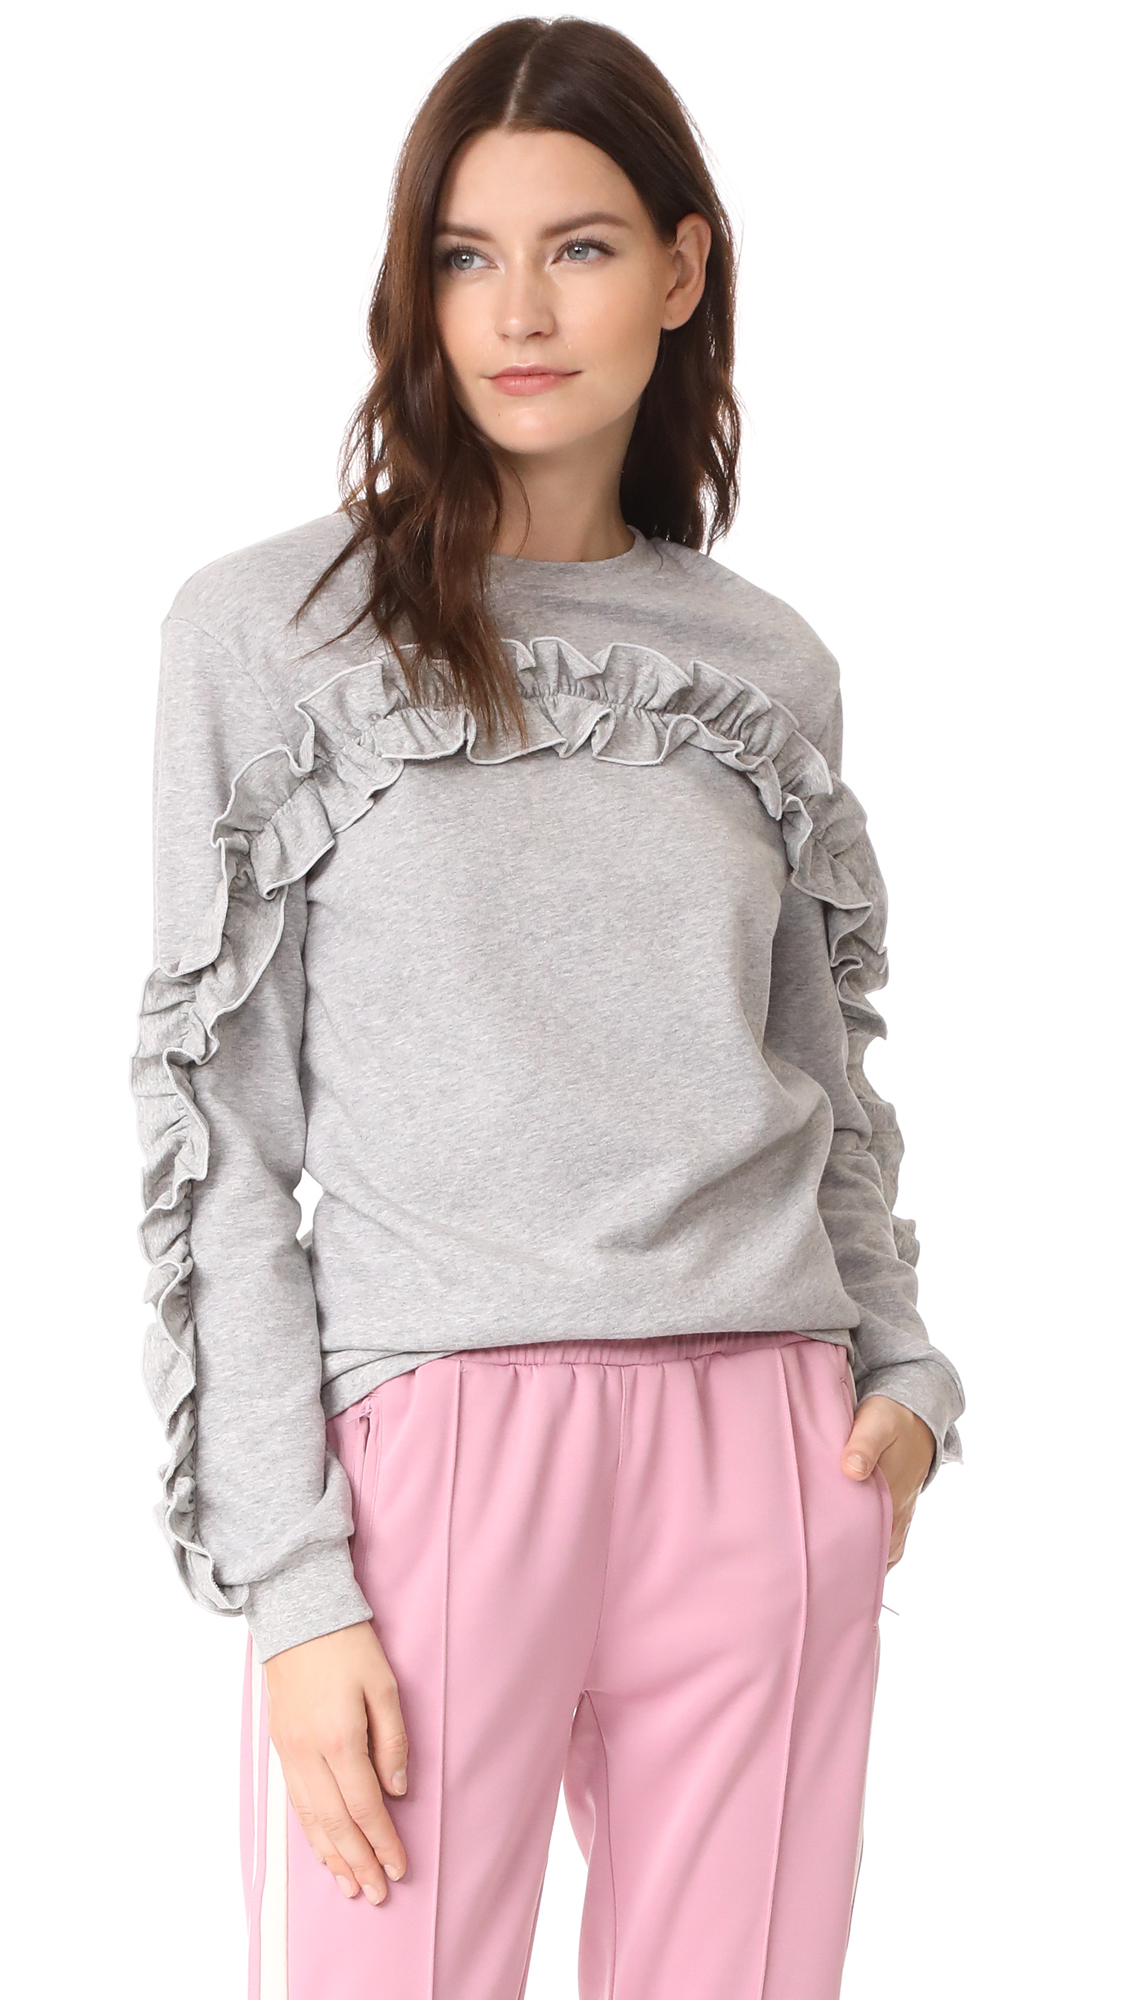 ENGLISH FACTORY Ruffle Detail Sweatshirt - Heather Grey